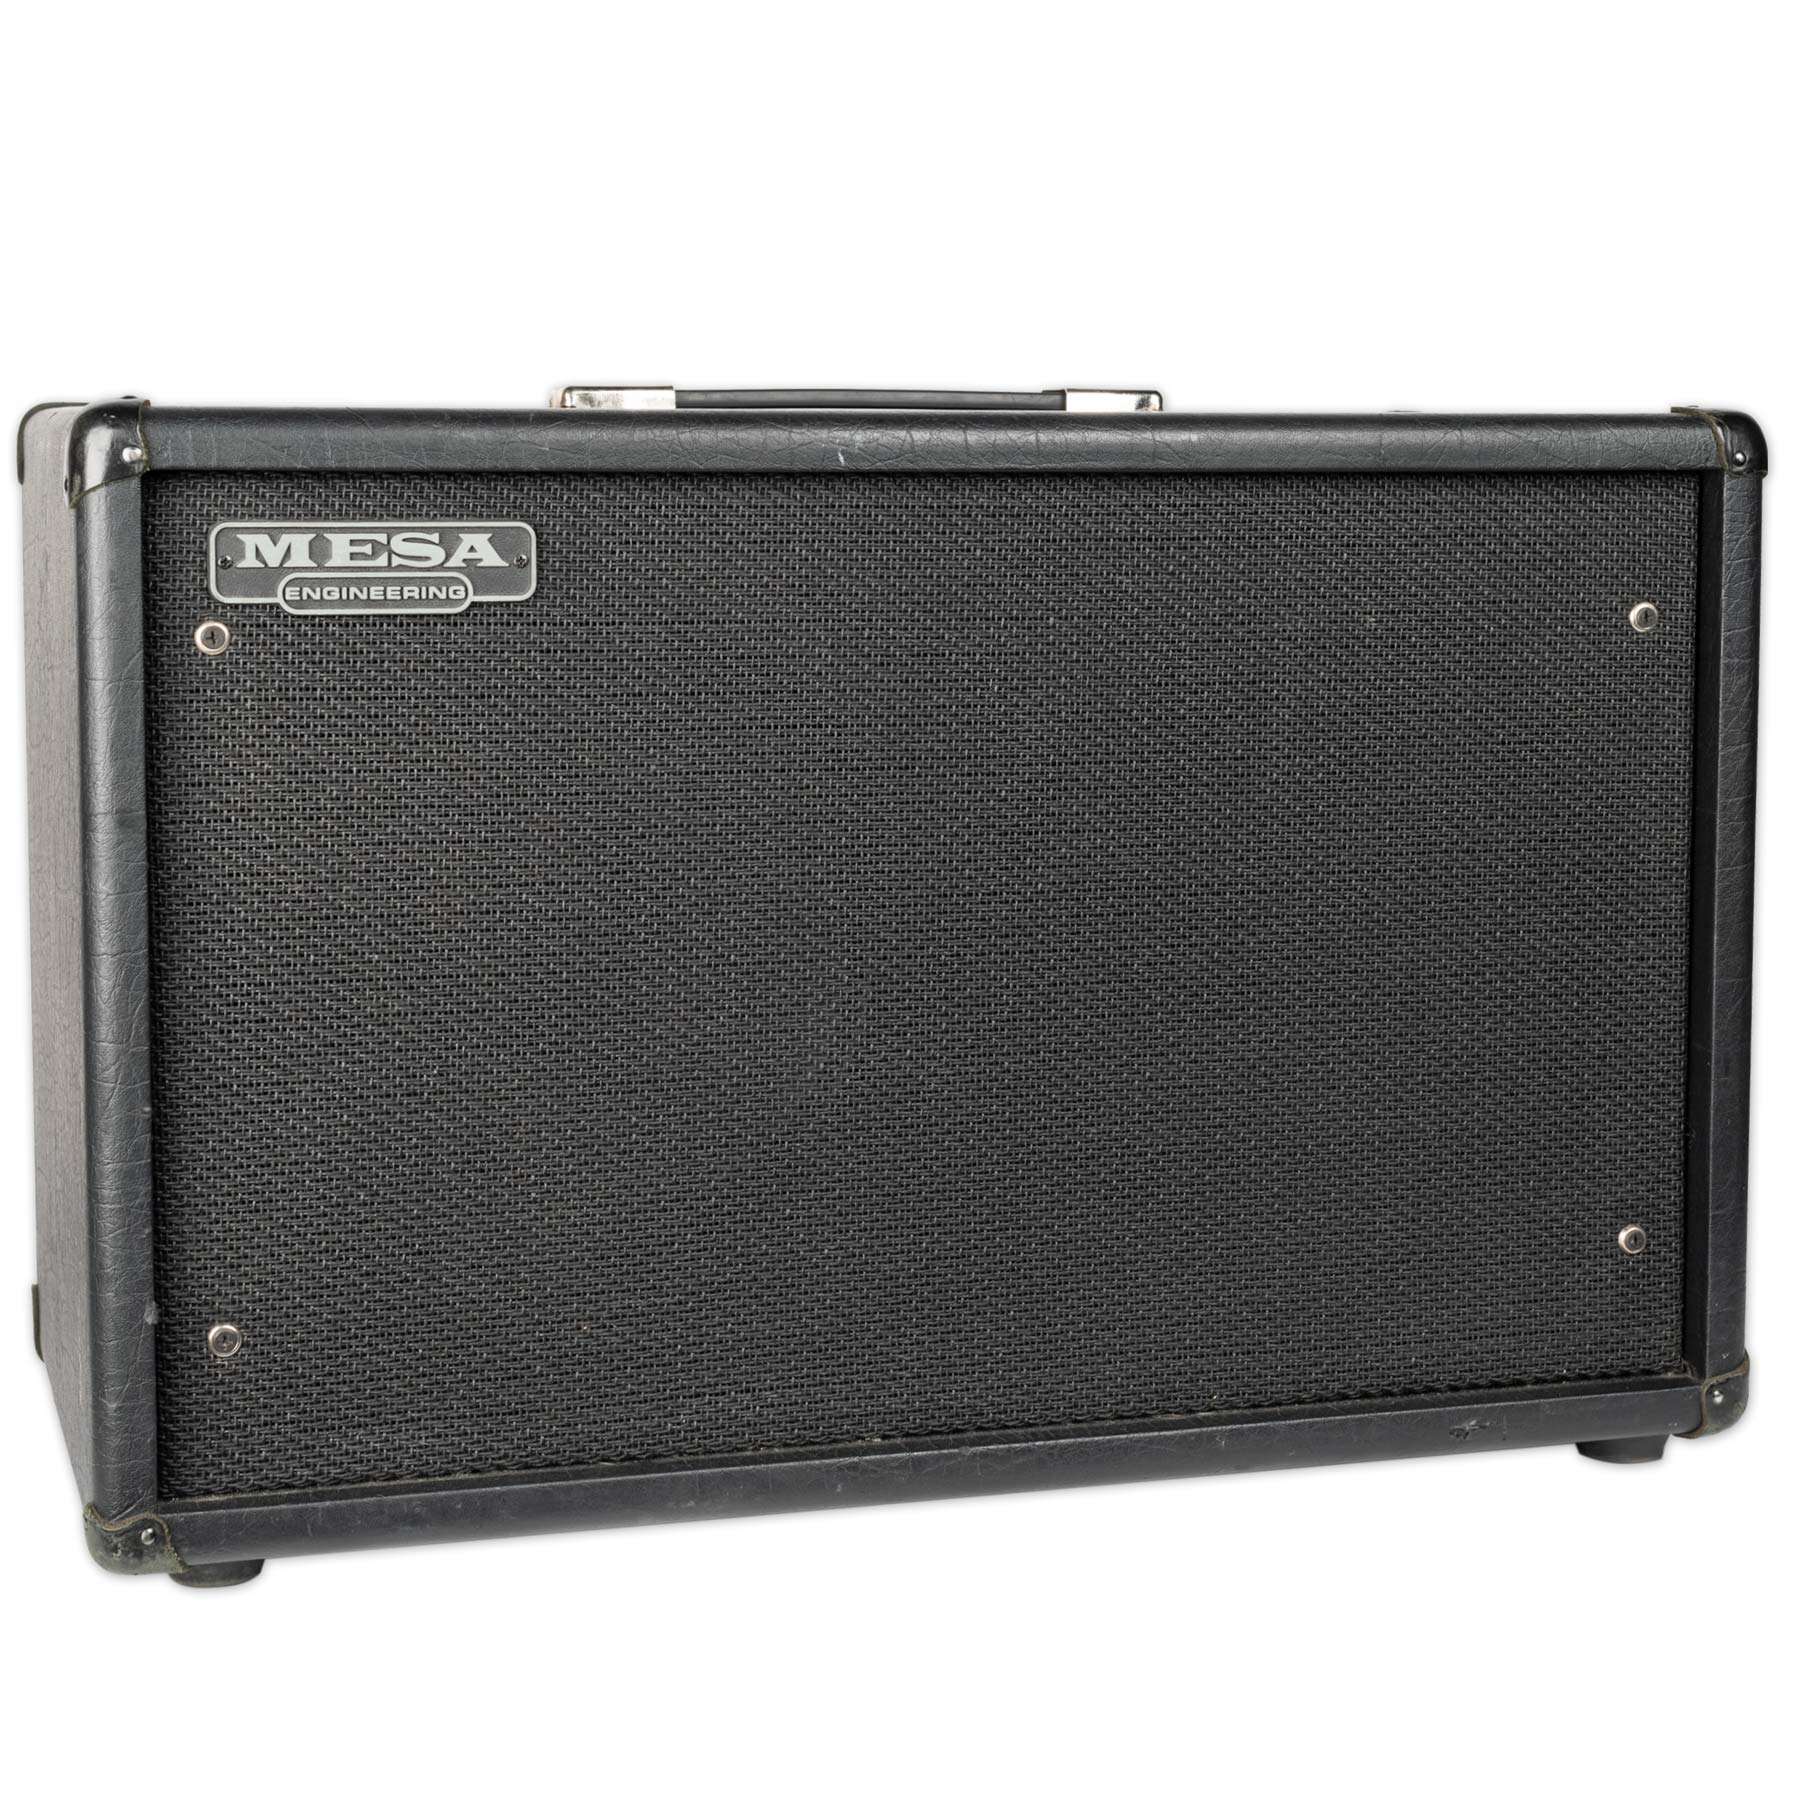 USED MESA BOOGIE 2X12 CABINET WITH BLACK SHADOW SPEAKERS